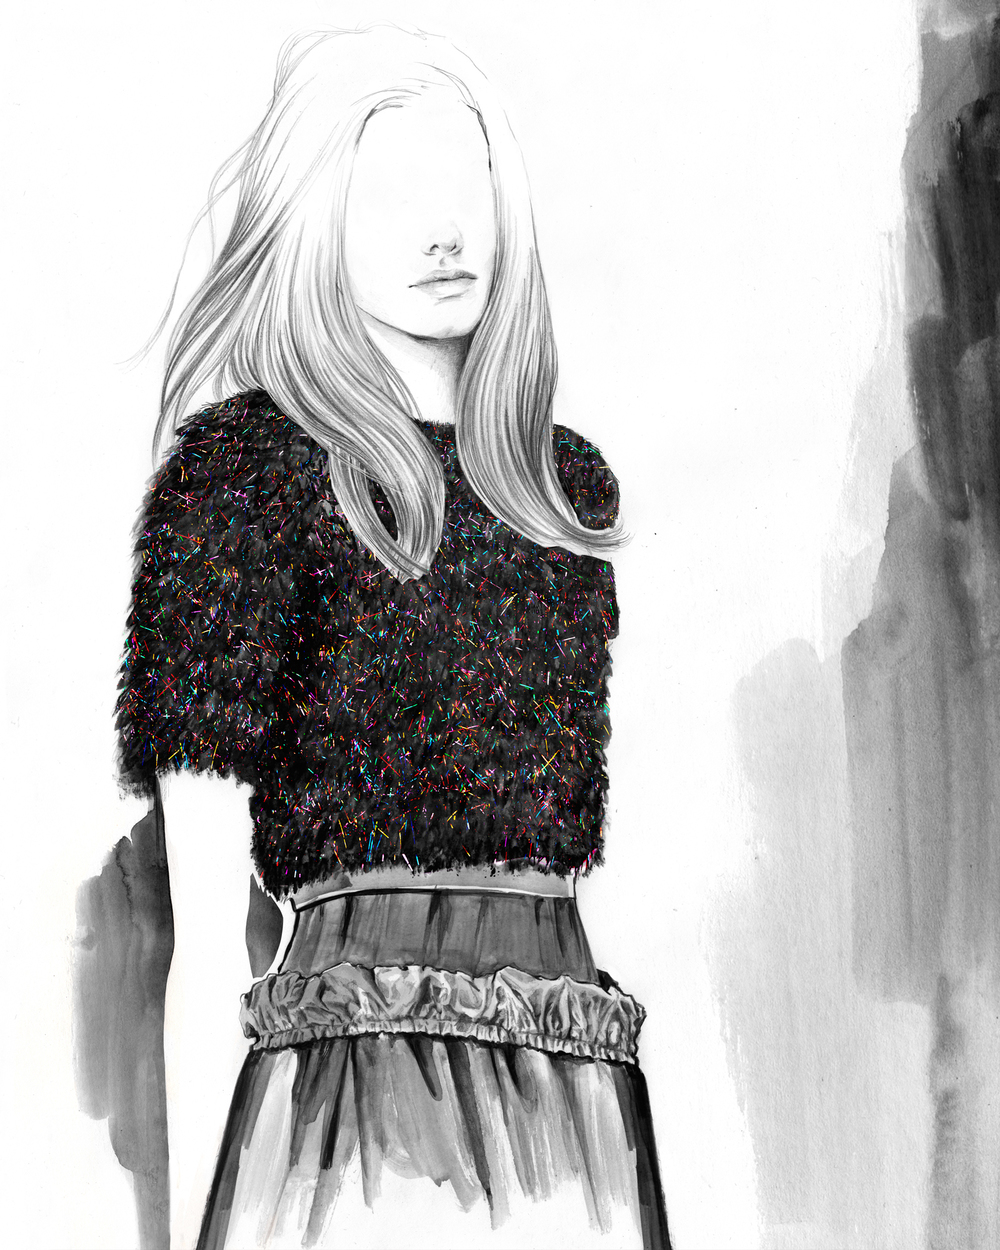 Illustration: Esra Røise